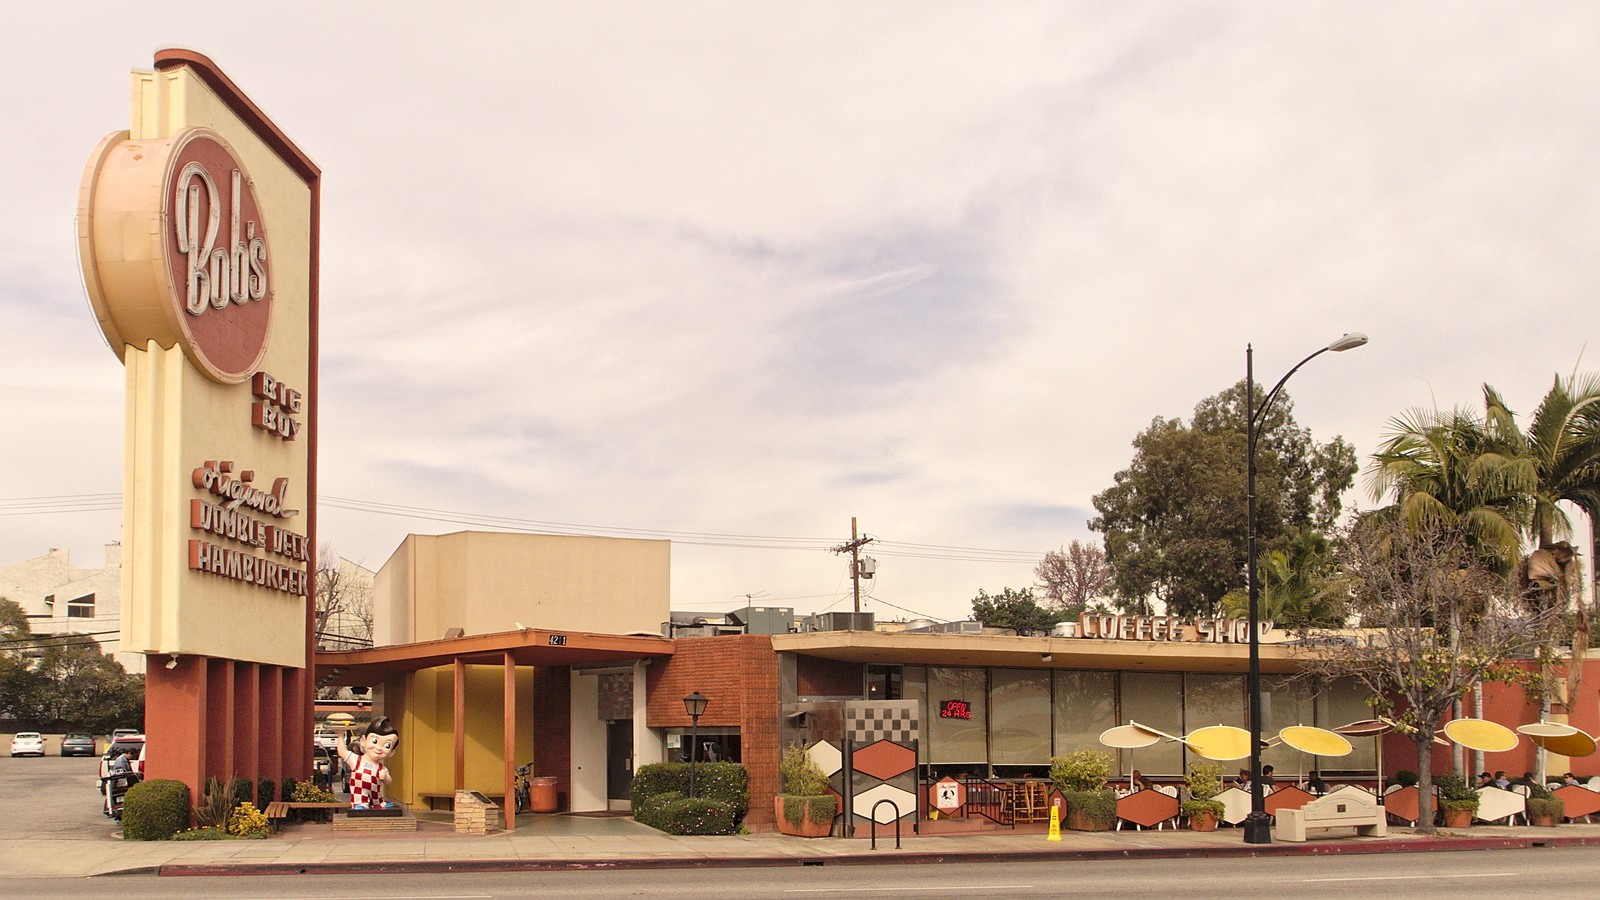 File Bobs Big Boy Burbank 2014 01 21 3 Jpg Wikimedia Commons